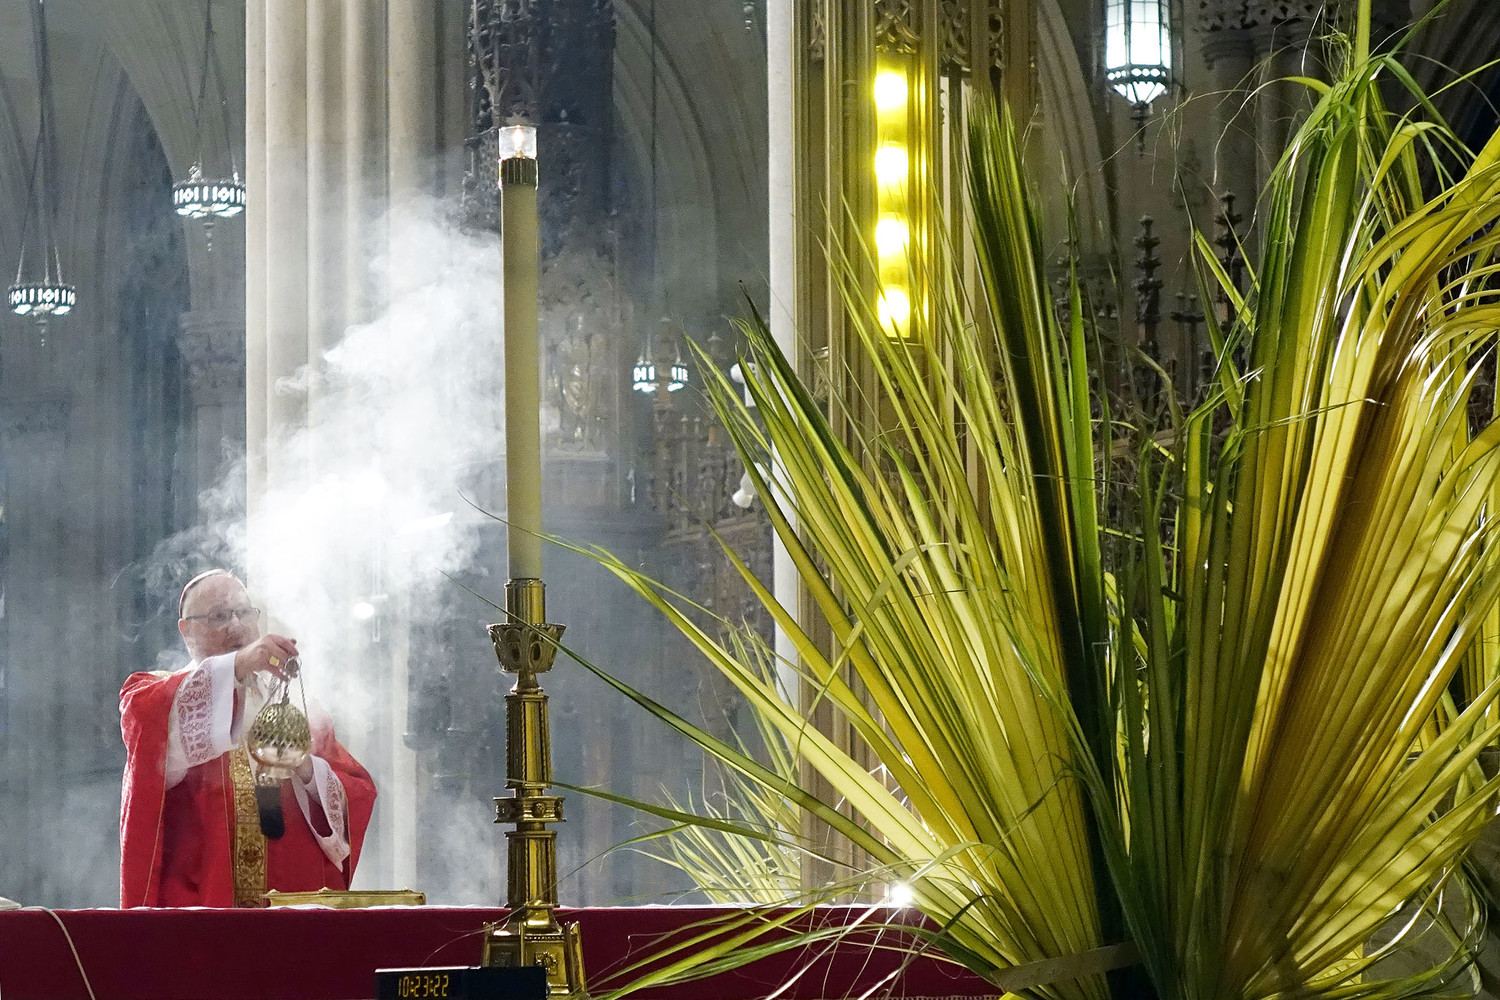 Cardinal Dolan serves as principal celebrant at the 10:15 a.m. Mass at St. Patrick's Cathedral on March 25, Palm Sunday of the Passion of the Lord. The view was captured from behind the altar.